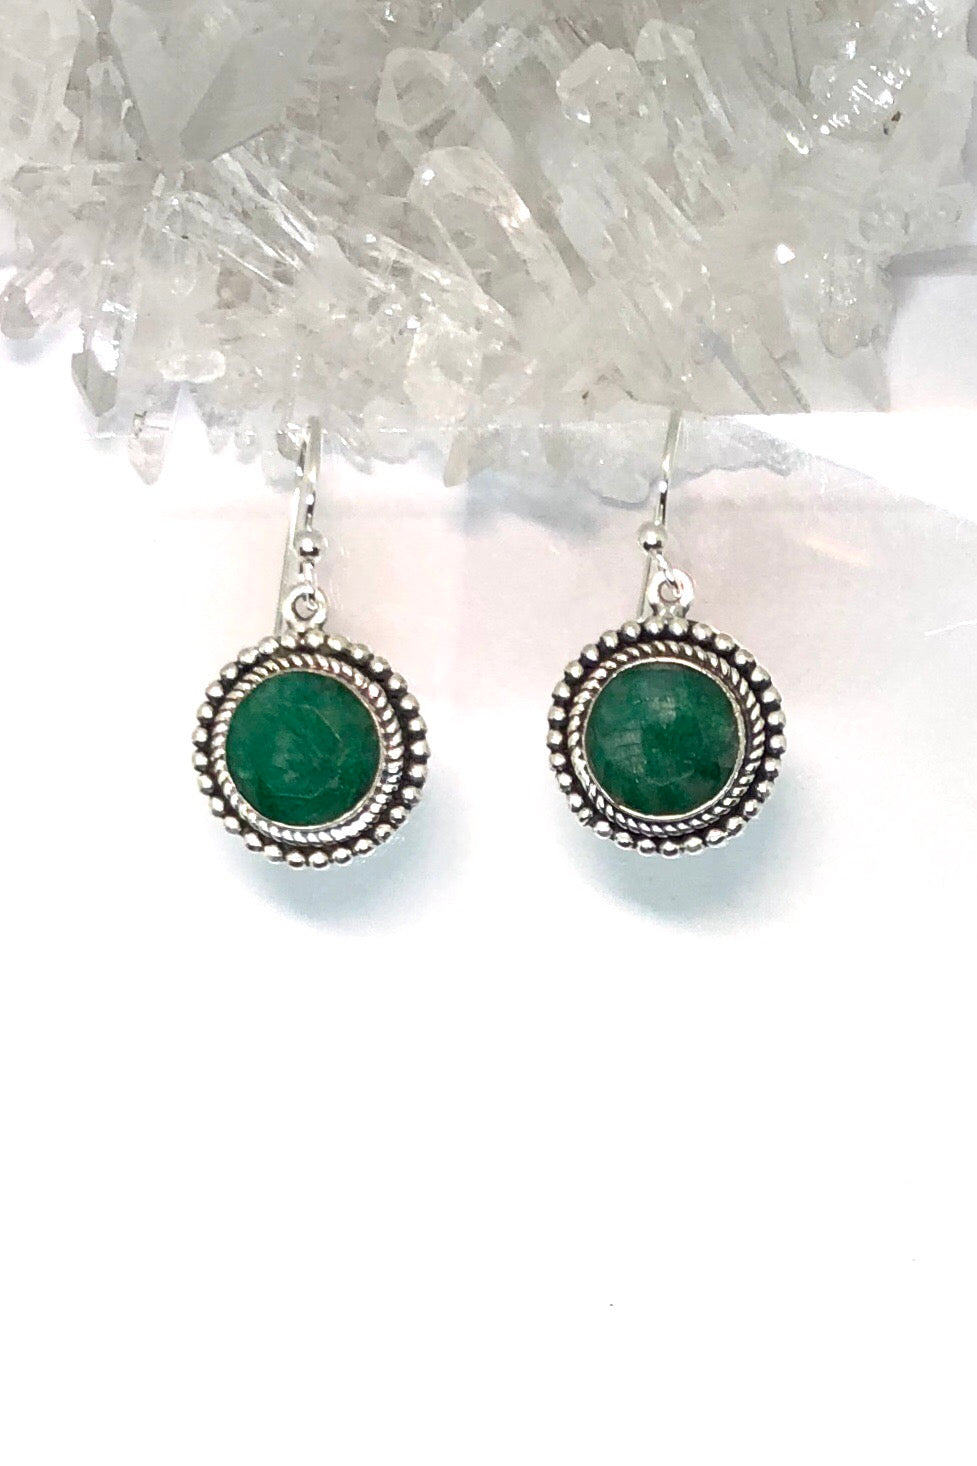 A gorgeous green emerald sits at the centre of silver petals on these earrings